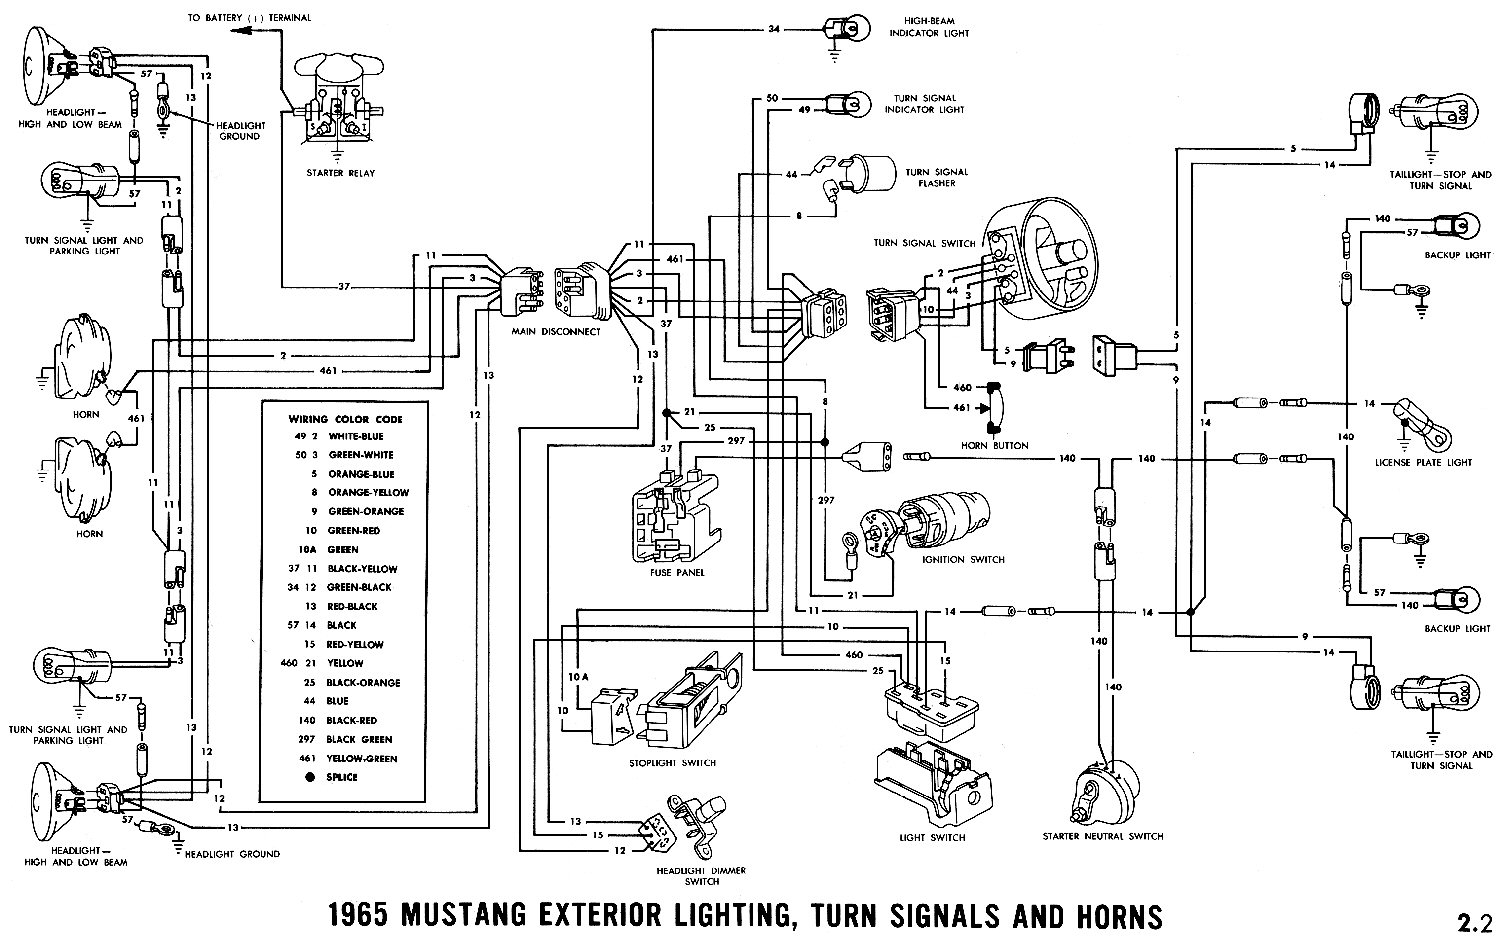 1965 ford mustang wiring diagram Collection-1965 Mustang Wiring Diagram 14-i